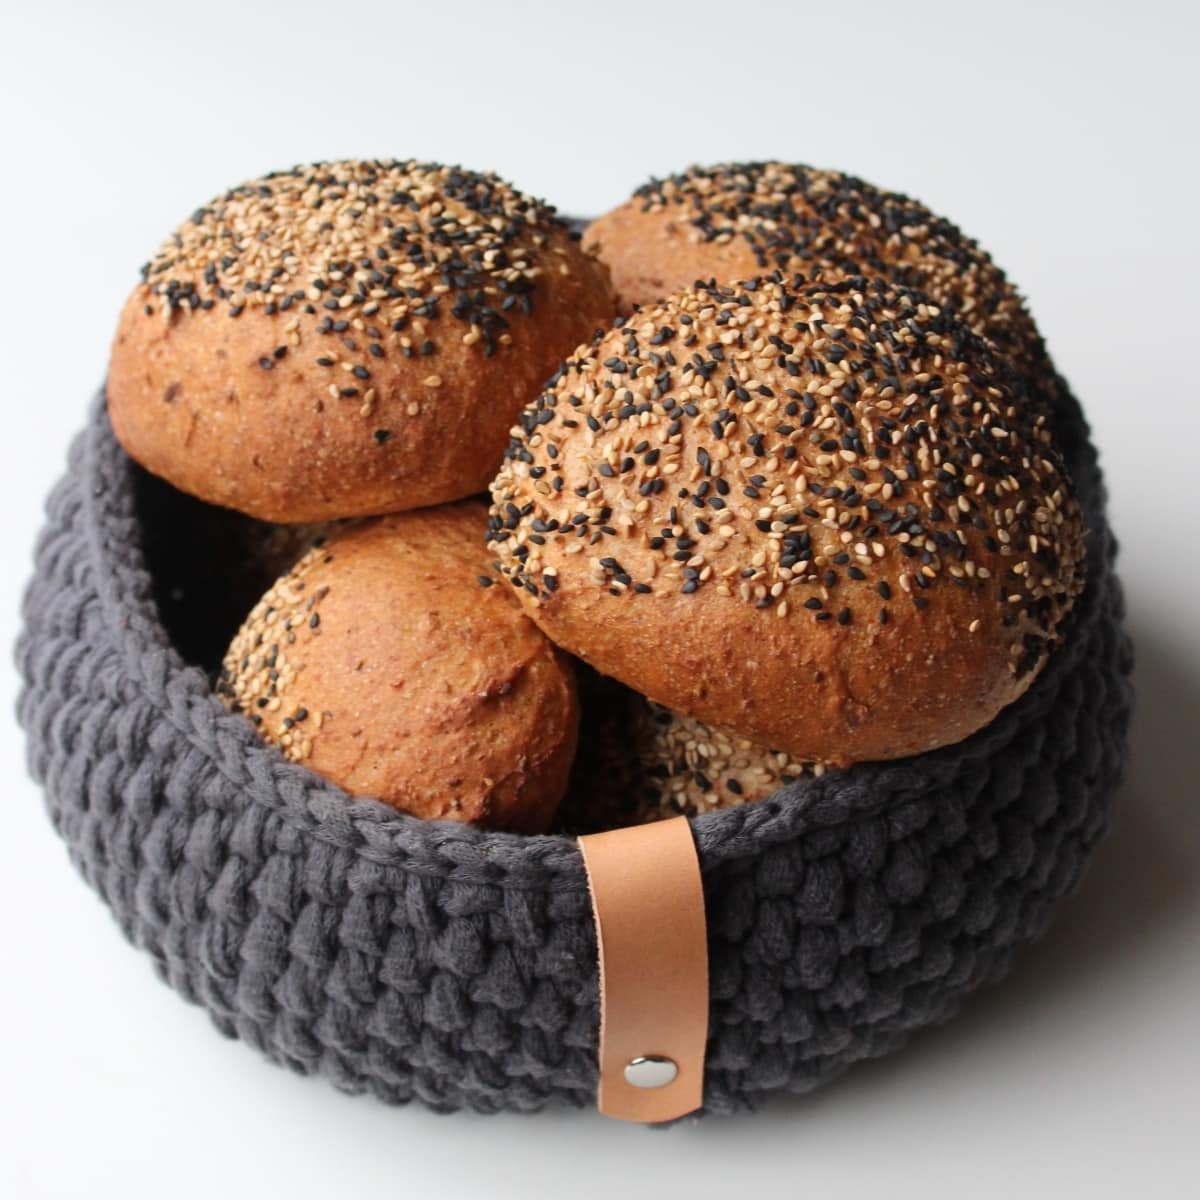 De bedste boller, til sandwich og som morgenmad. Fuldkornsbollerne kan bruges som sandwichboller, madpakkeboller, rundstykker… En super god bolleopskrift! Find opskrifter og inspiration til årets gang på danishthings.com (Recipe in danish)